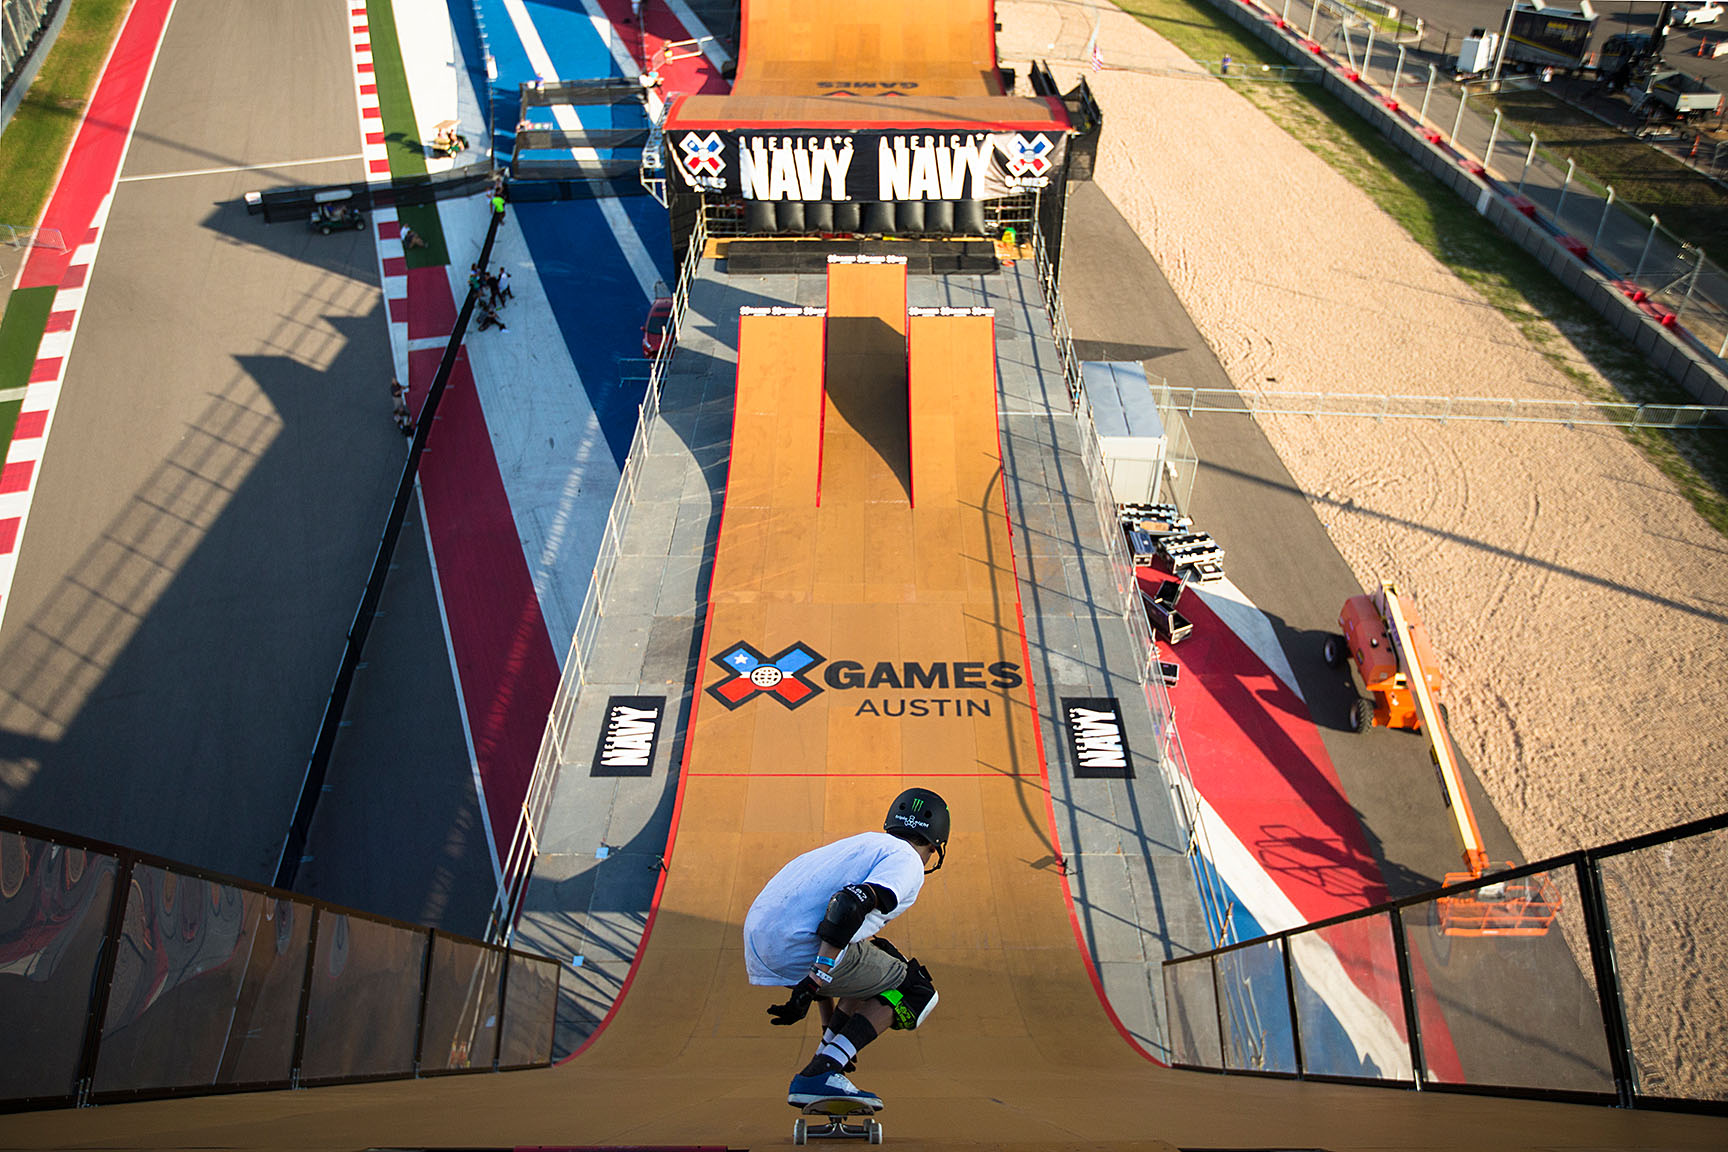 Skateboard Big Air competitor Trey Wood tests out the MegaRamp roll-in during practice on Thursday. Wood is part of the new generation of MegaRamp skaters being schooled to ride the ramp by veteran pro Bob Burnquist.